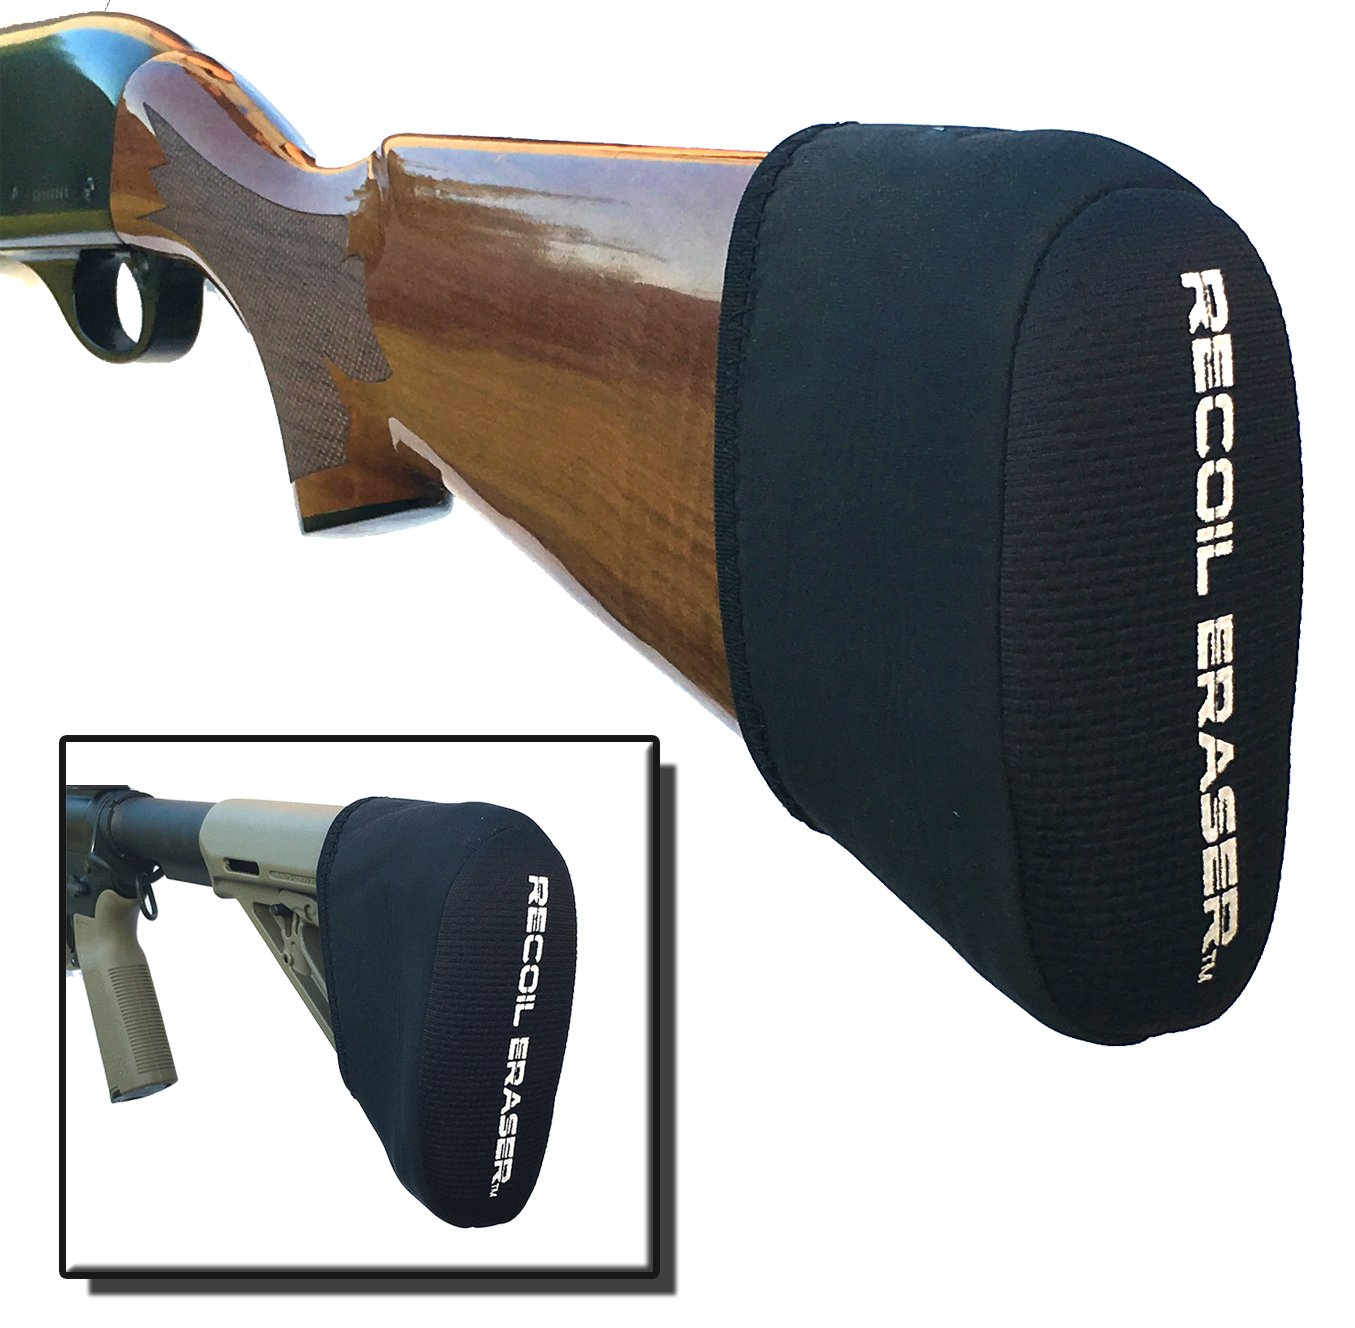 Recoil Eraser - Slip On Recoil Pad, Gel Filled by TinyPrice